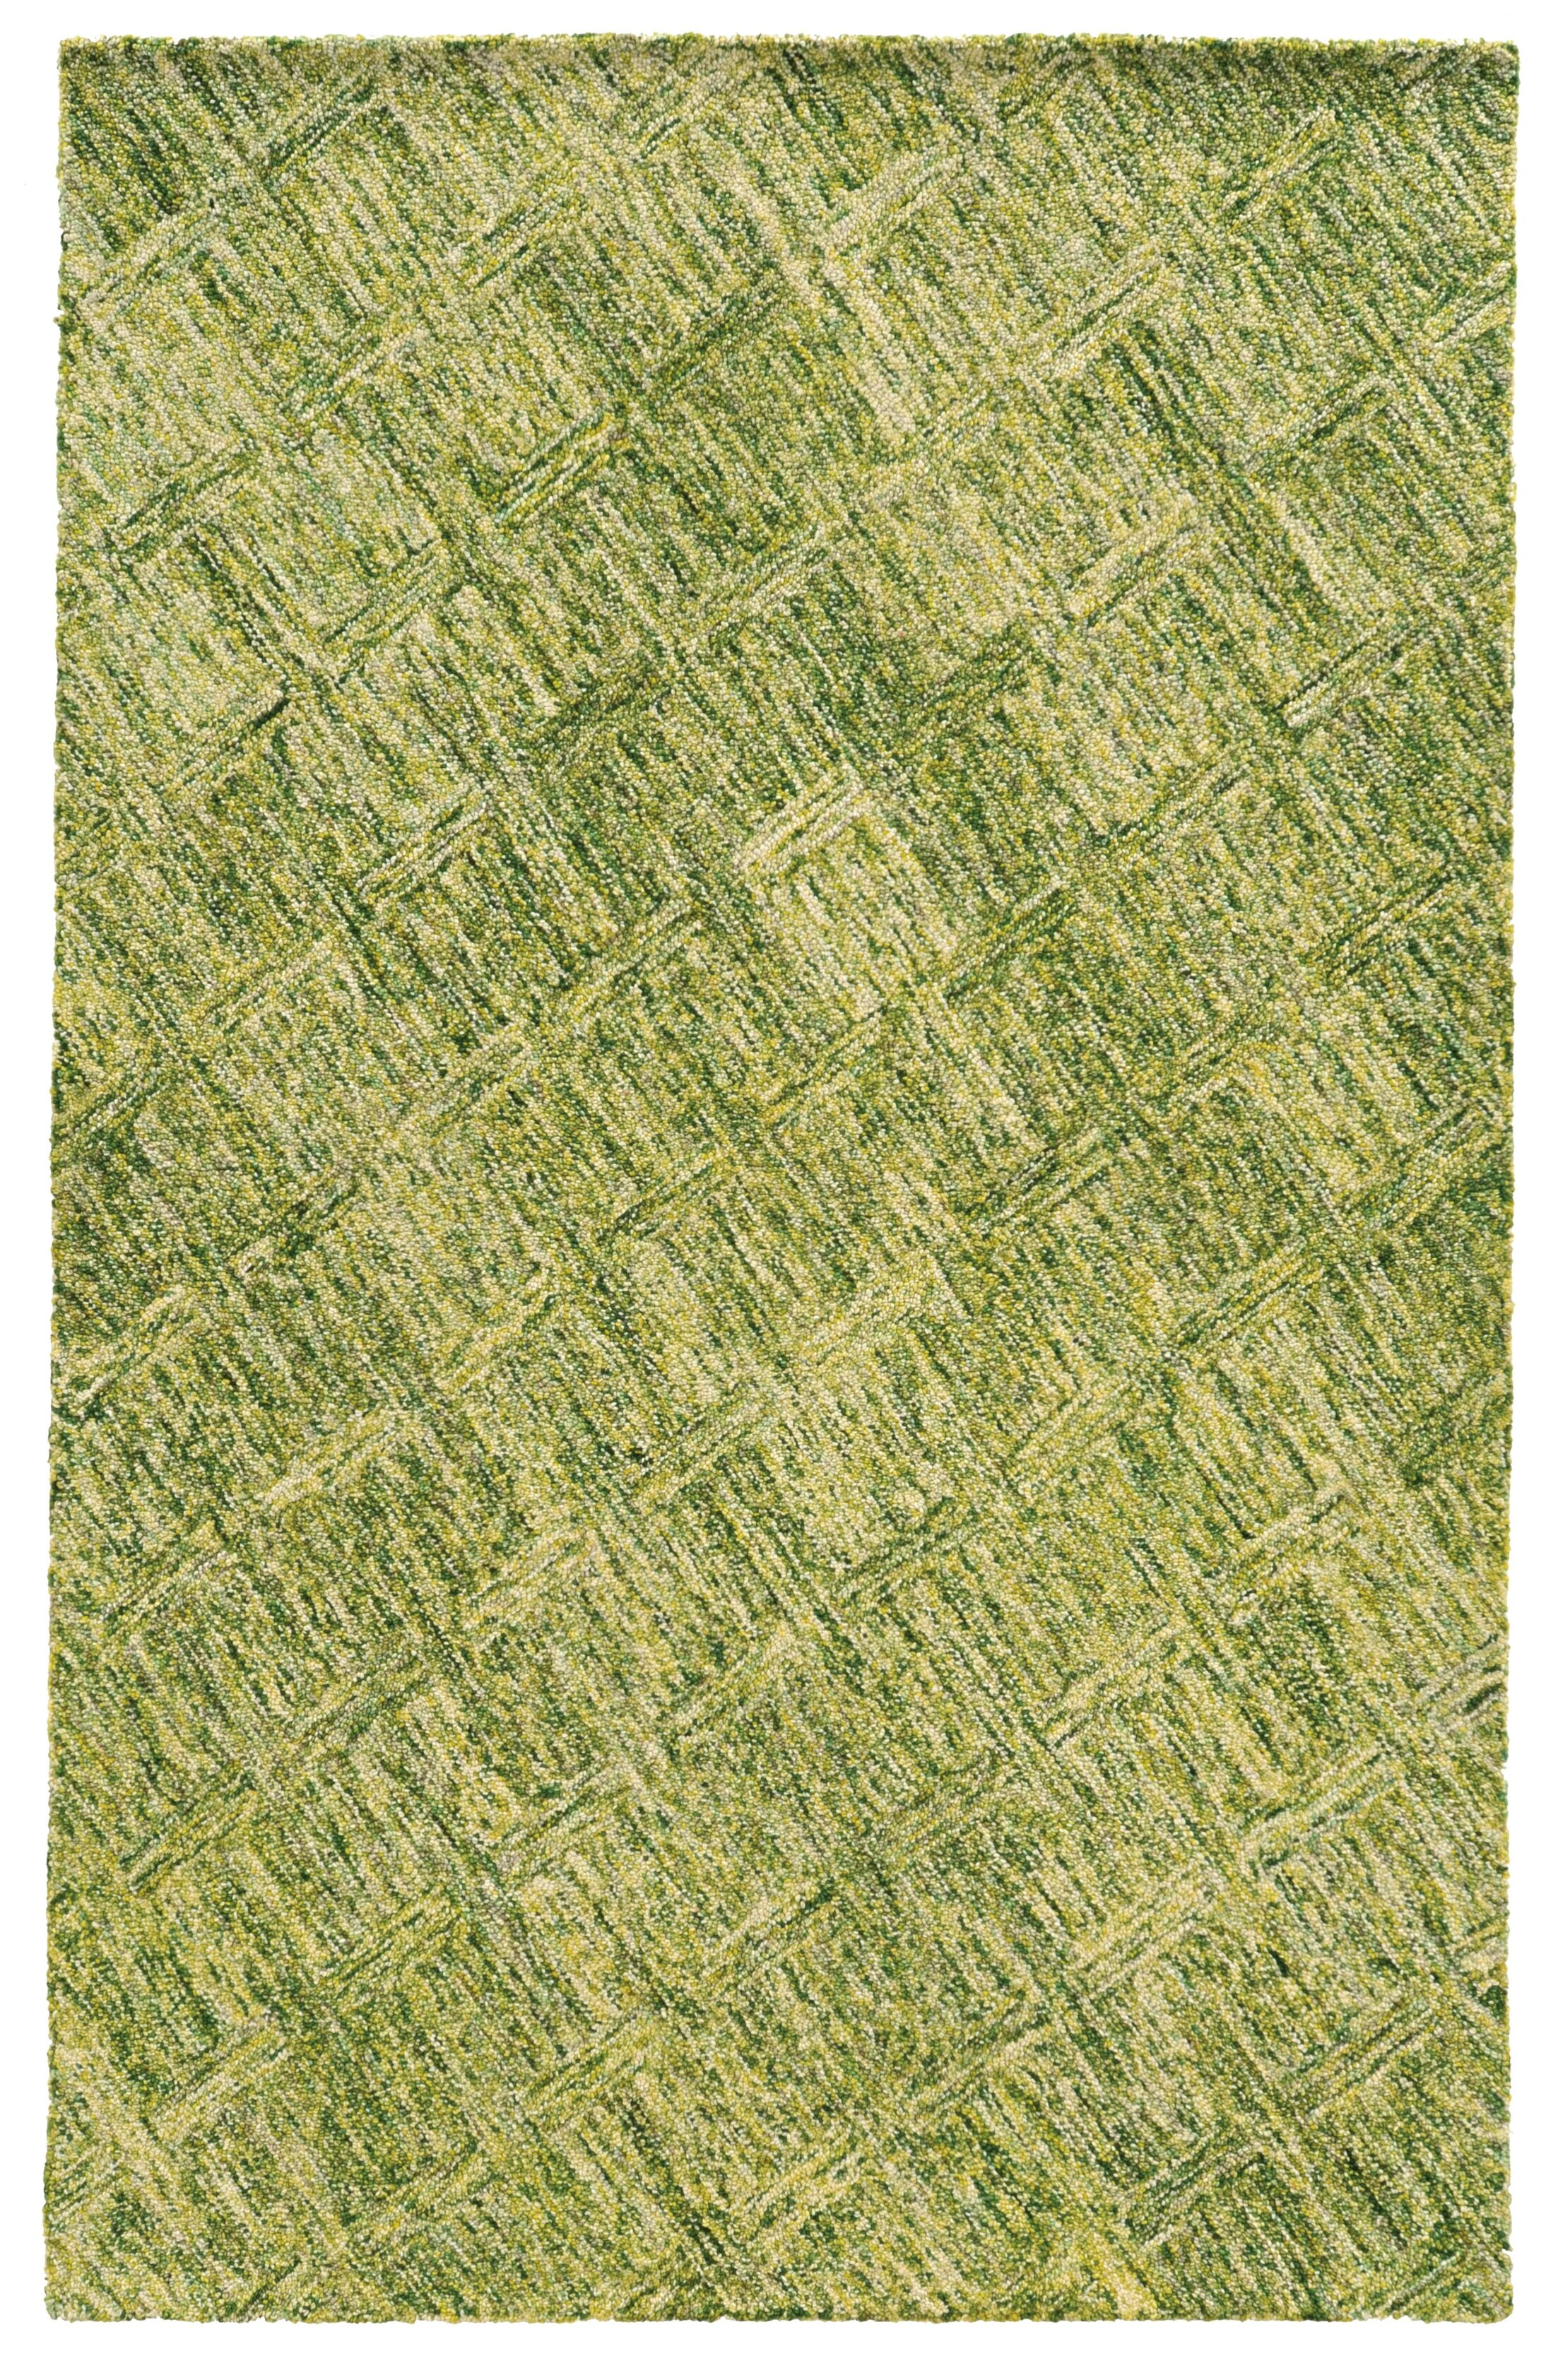 Colorscape Geometric Hand-Tufted Green Area Rug Rug Size: Runner 2'6